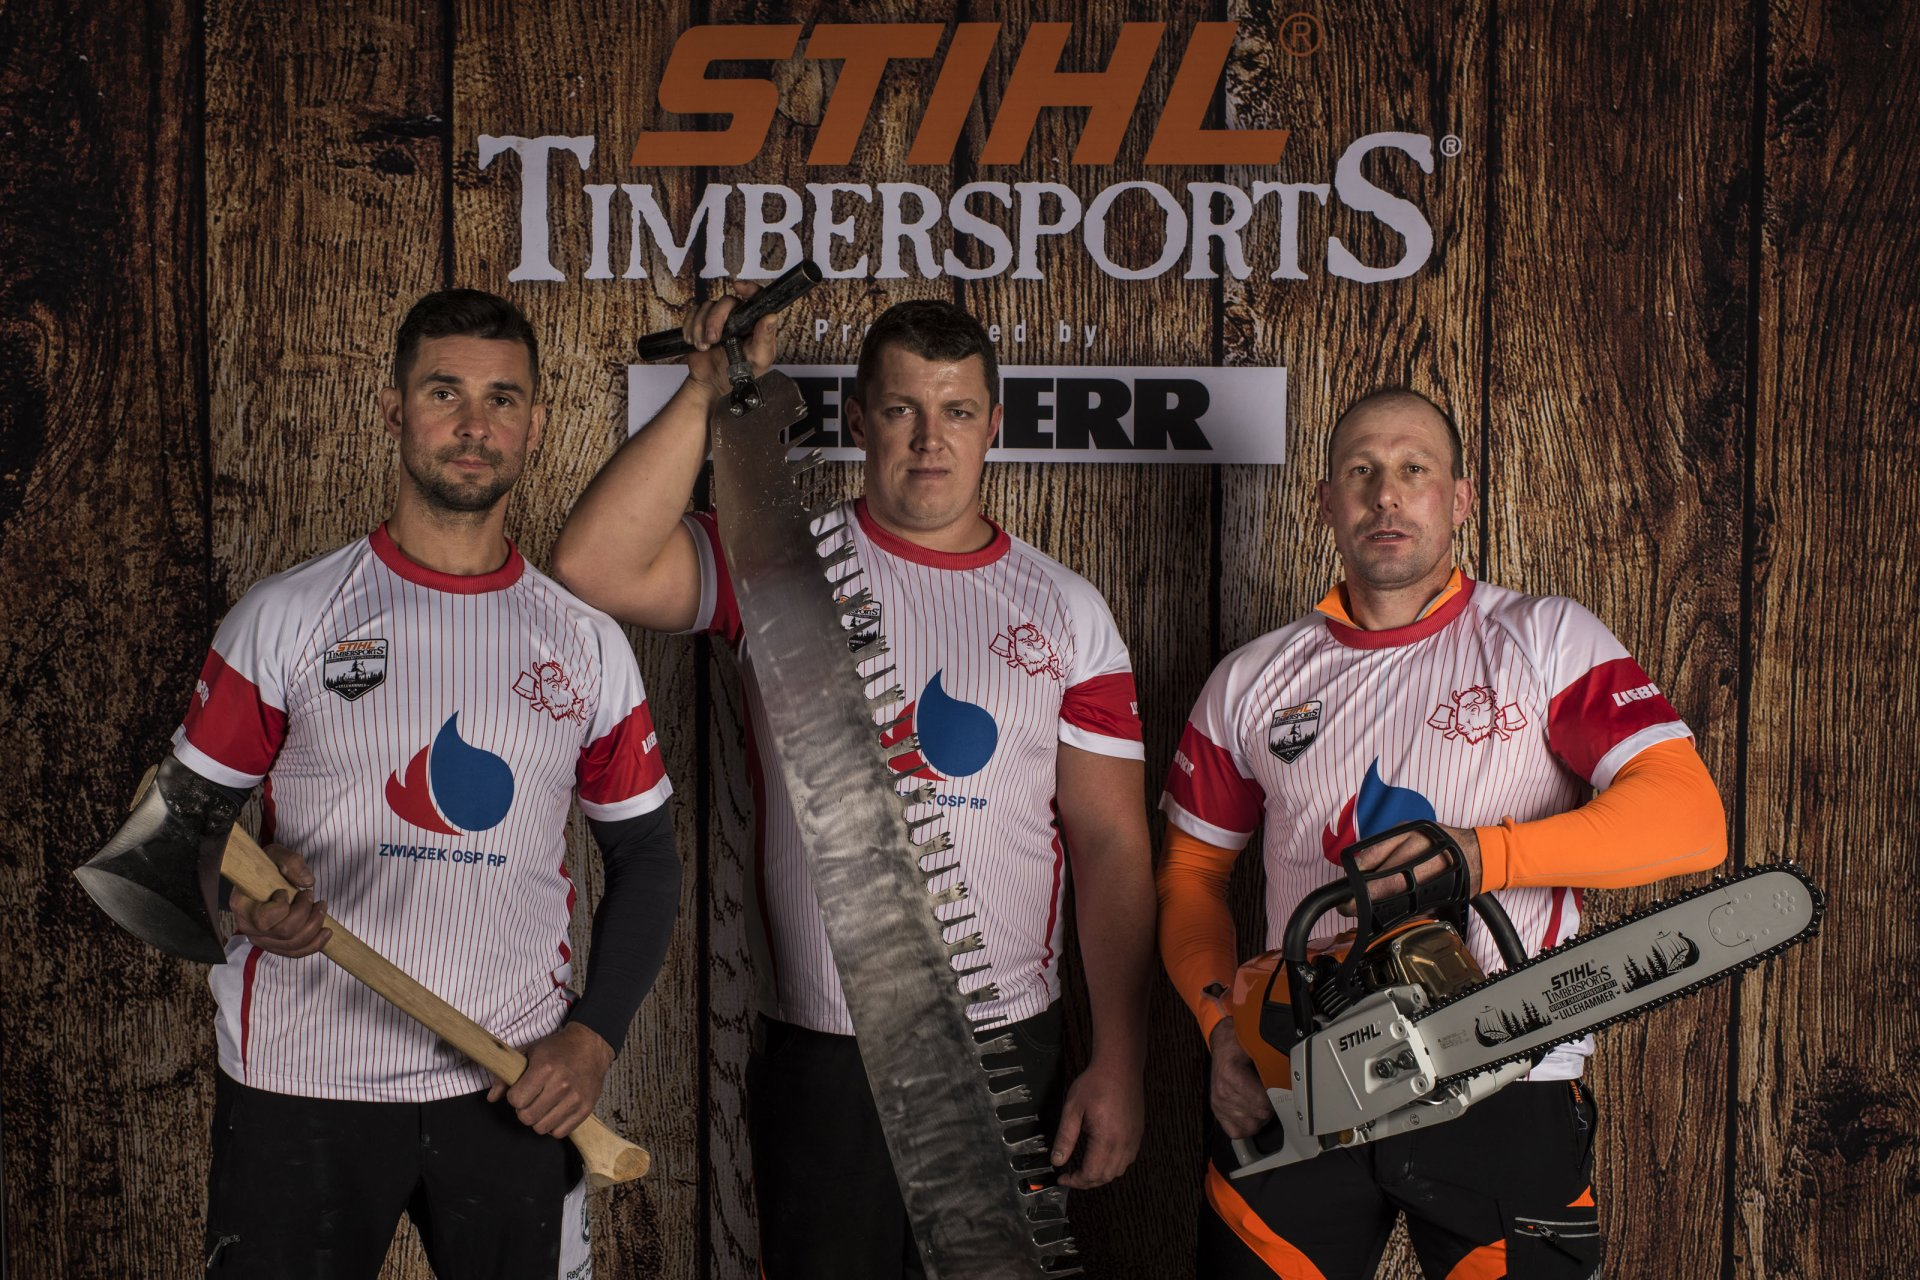 Team Poland poses for a photograph prior to the Team Competition of the Stihl Timbersports World Championships at the Hakons Hall in Lillehammer, Norway on November 3, 2017.